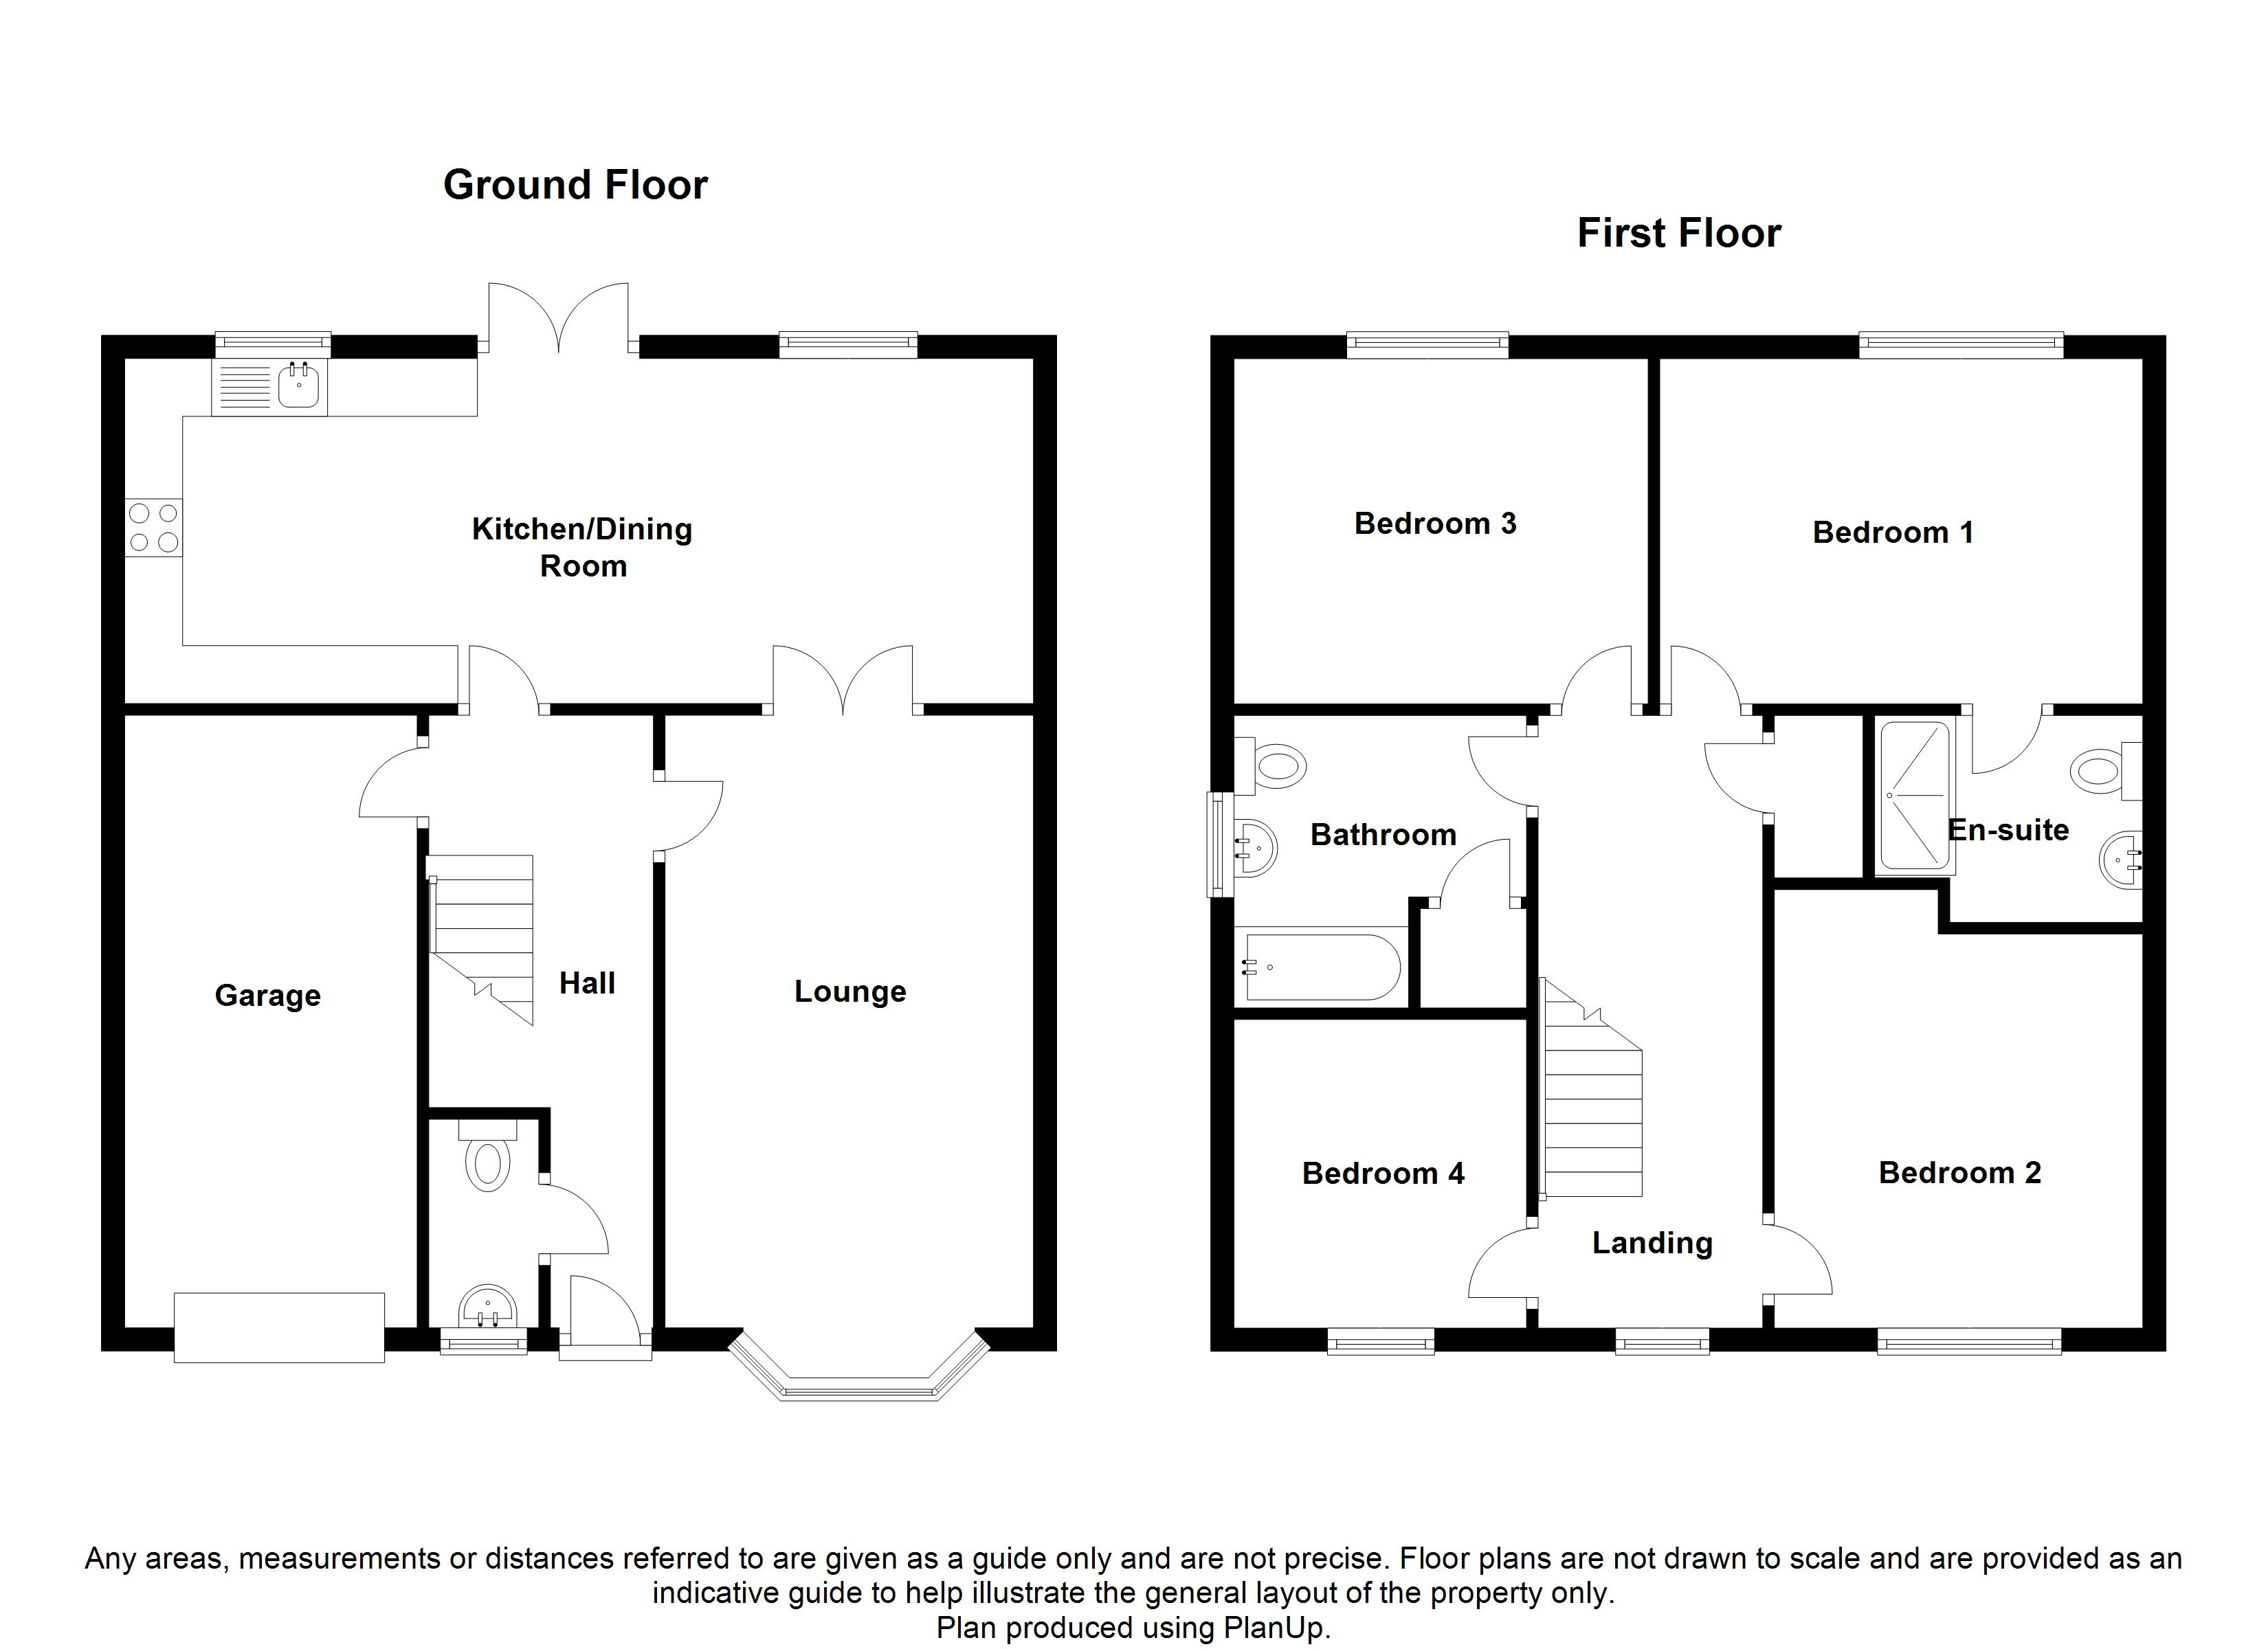 Bathroom layout guide good pricing guide kitchen and for Bathroom planning guide